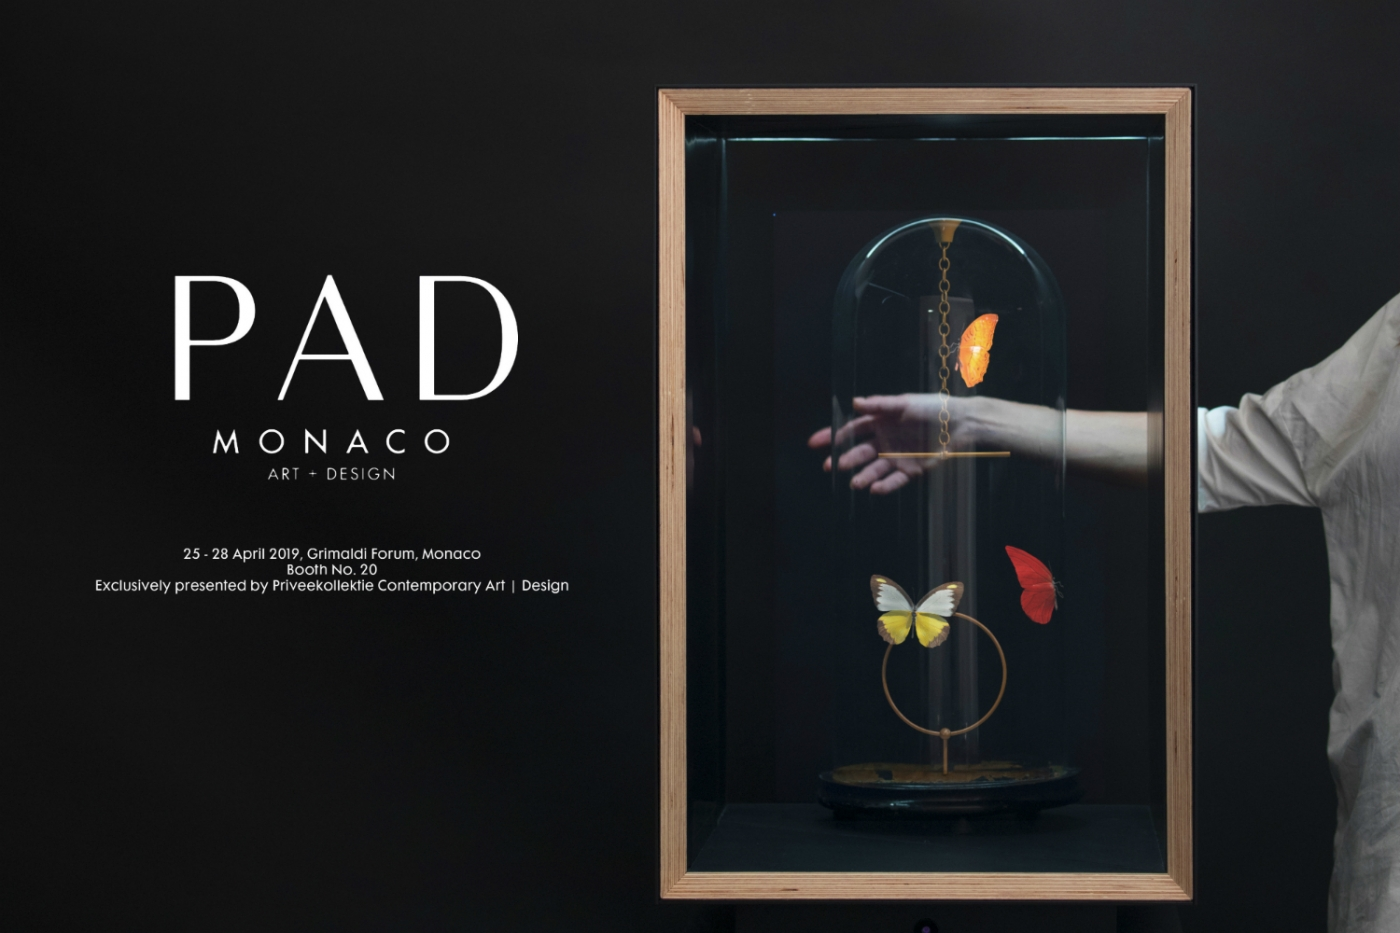 art fair PAD Monaco 2019: An Art Fair with A Crafty Flair feature 1 1400x933